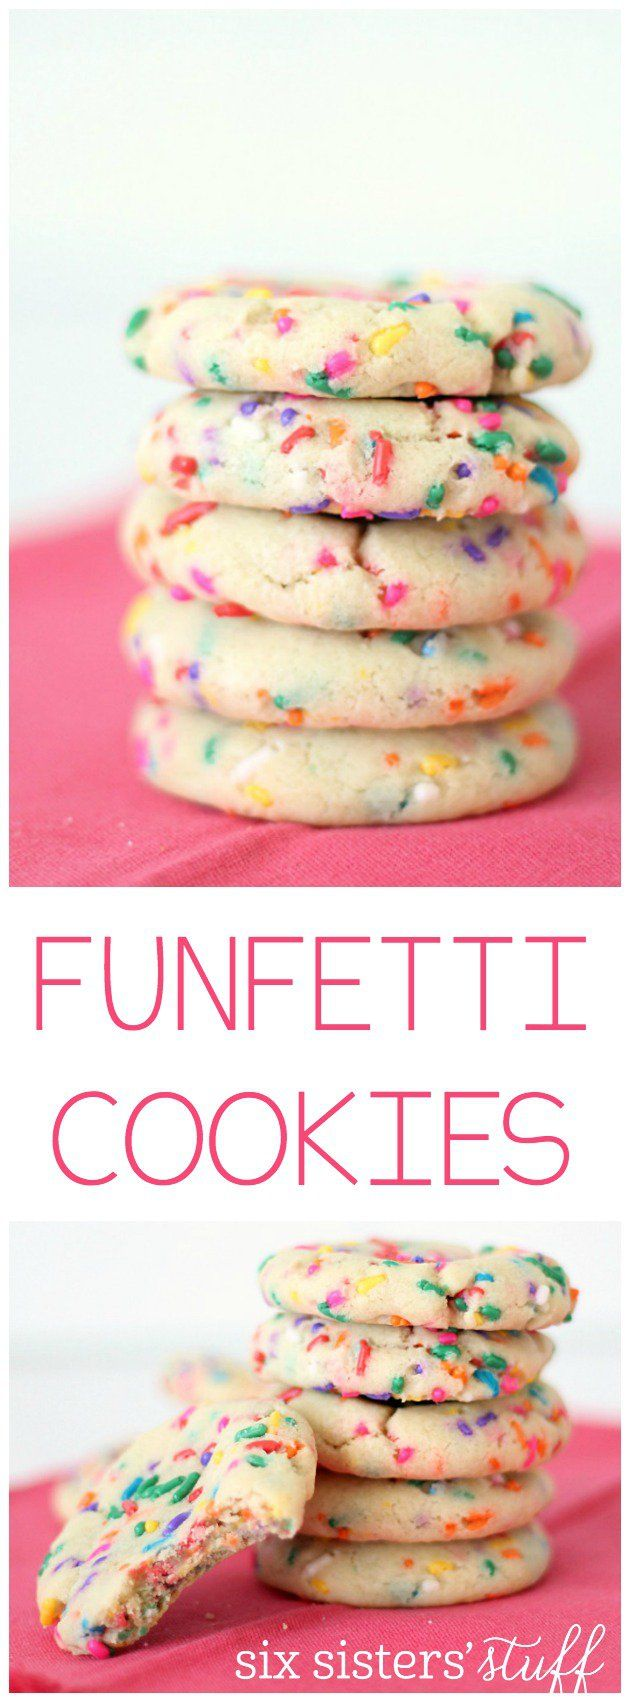 Homemade Funfetti Cookies from SixSistersStuff.com | This soft and chewy cookie with a funfetti twist is a perfect party or birthday snack your kids will love!